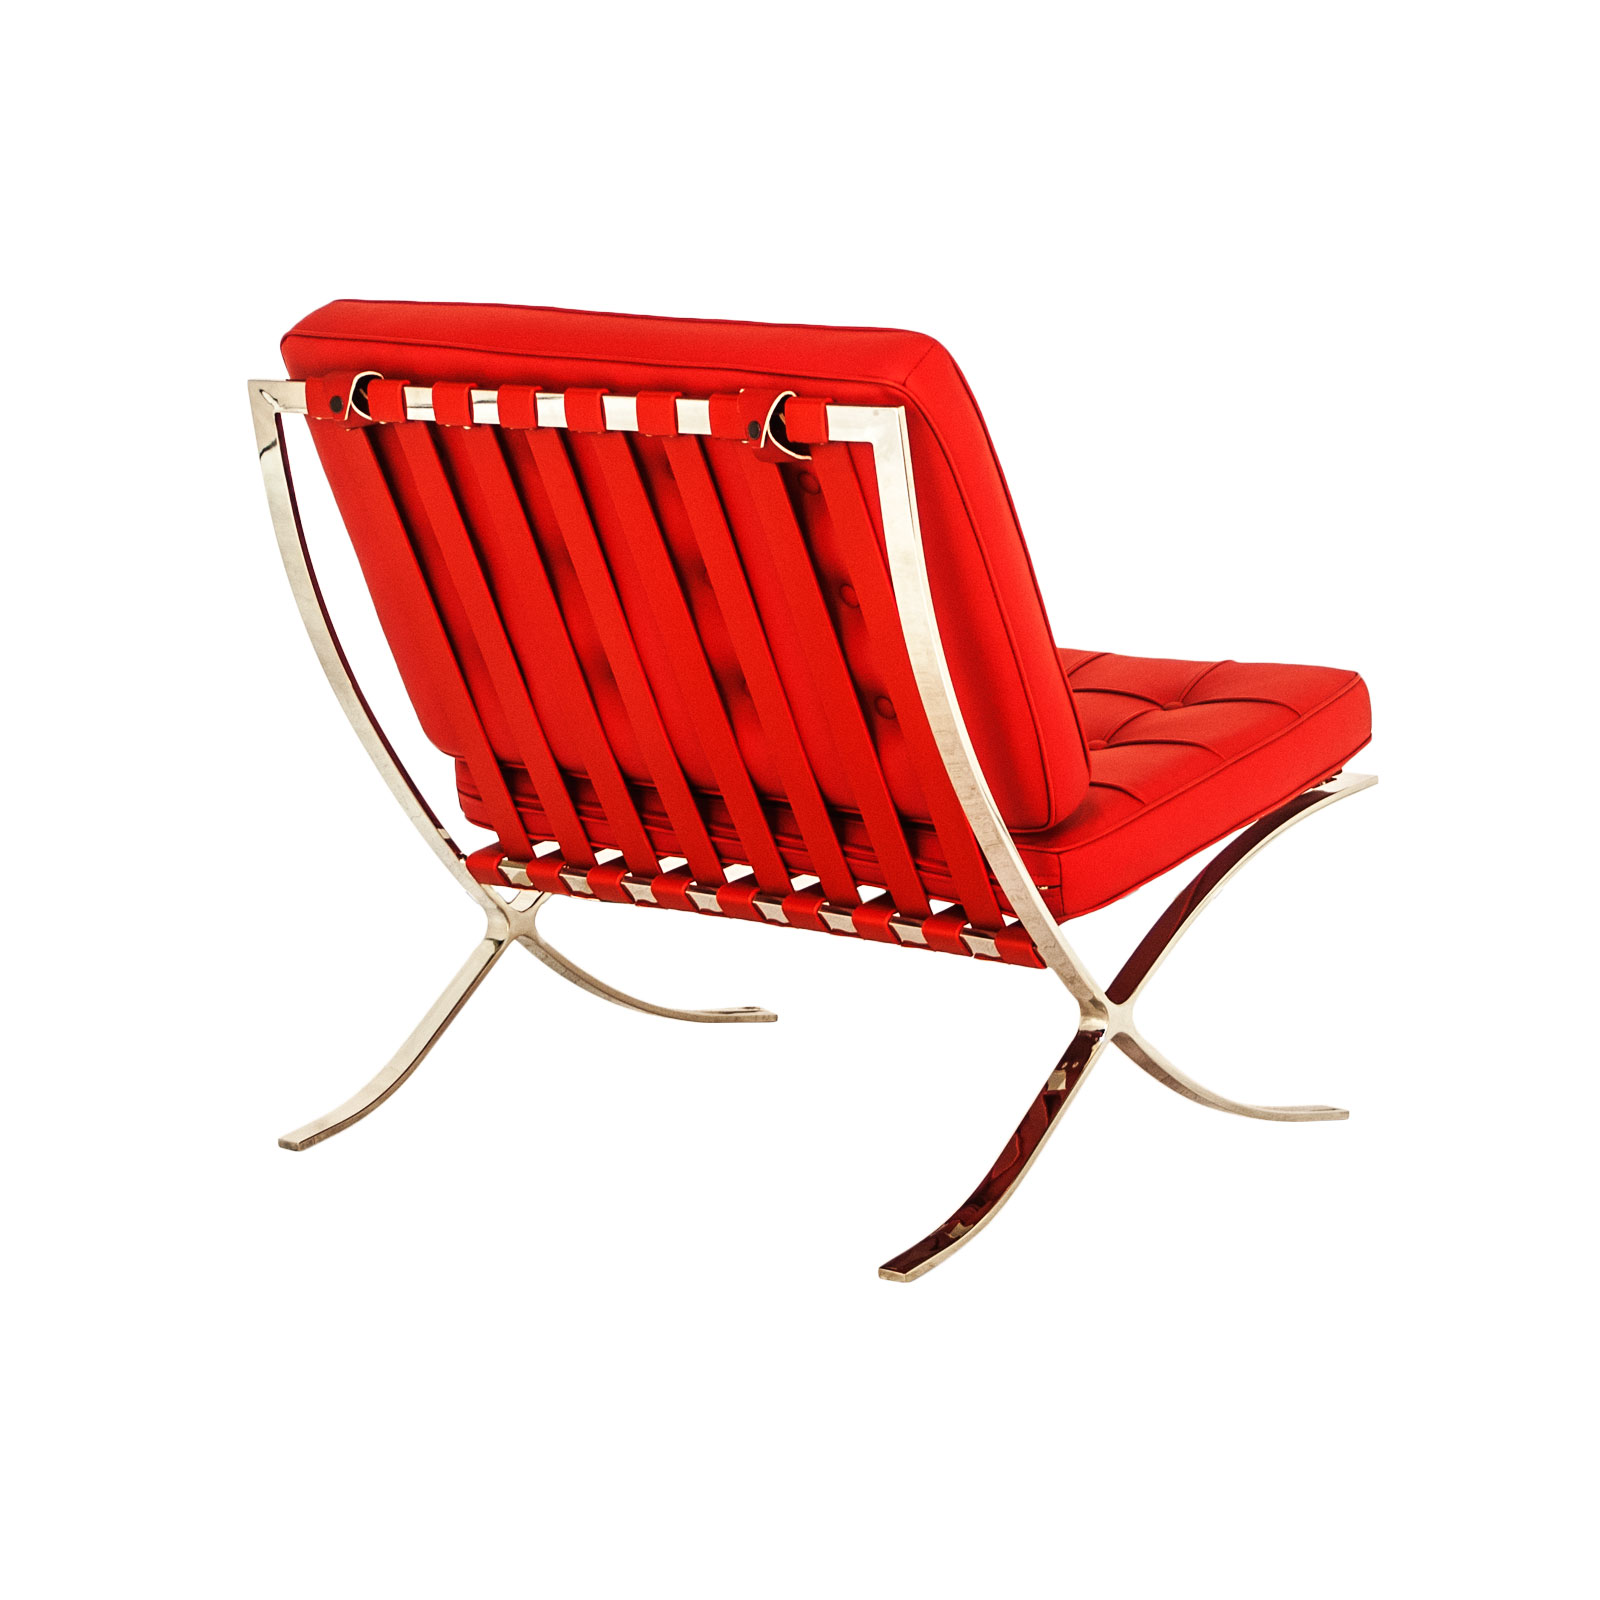 Barcelona Lounge Chair Barcelona Lounge Chair Rentals Mies Van Der Rohe